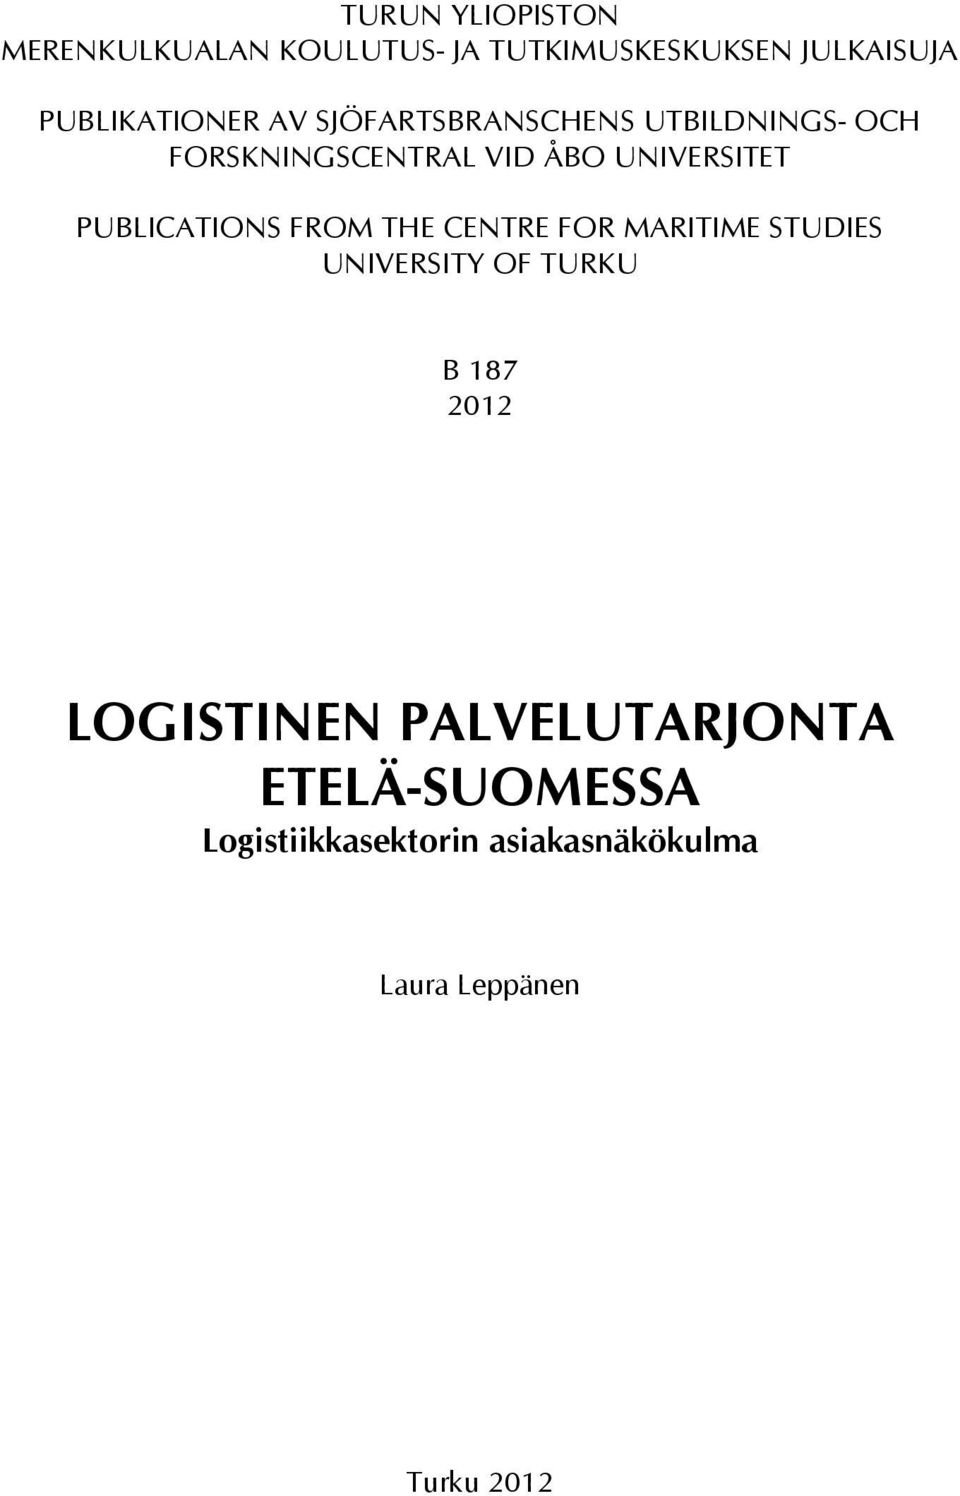 PUBLICATIONS FROM THE CENTRE FOR MARITIME STUDIES UNIVERSITY OF TURKU B 187 2012